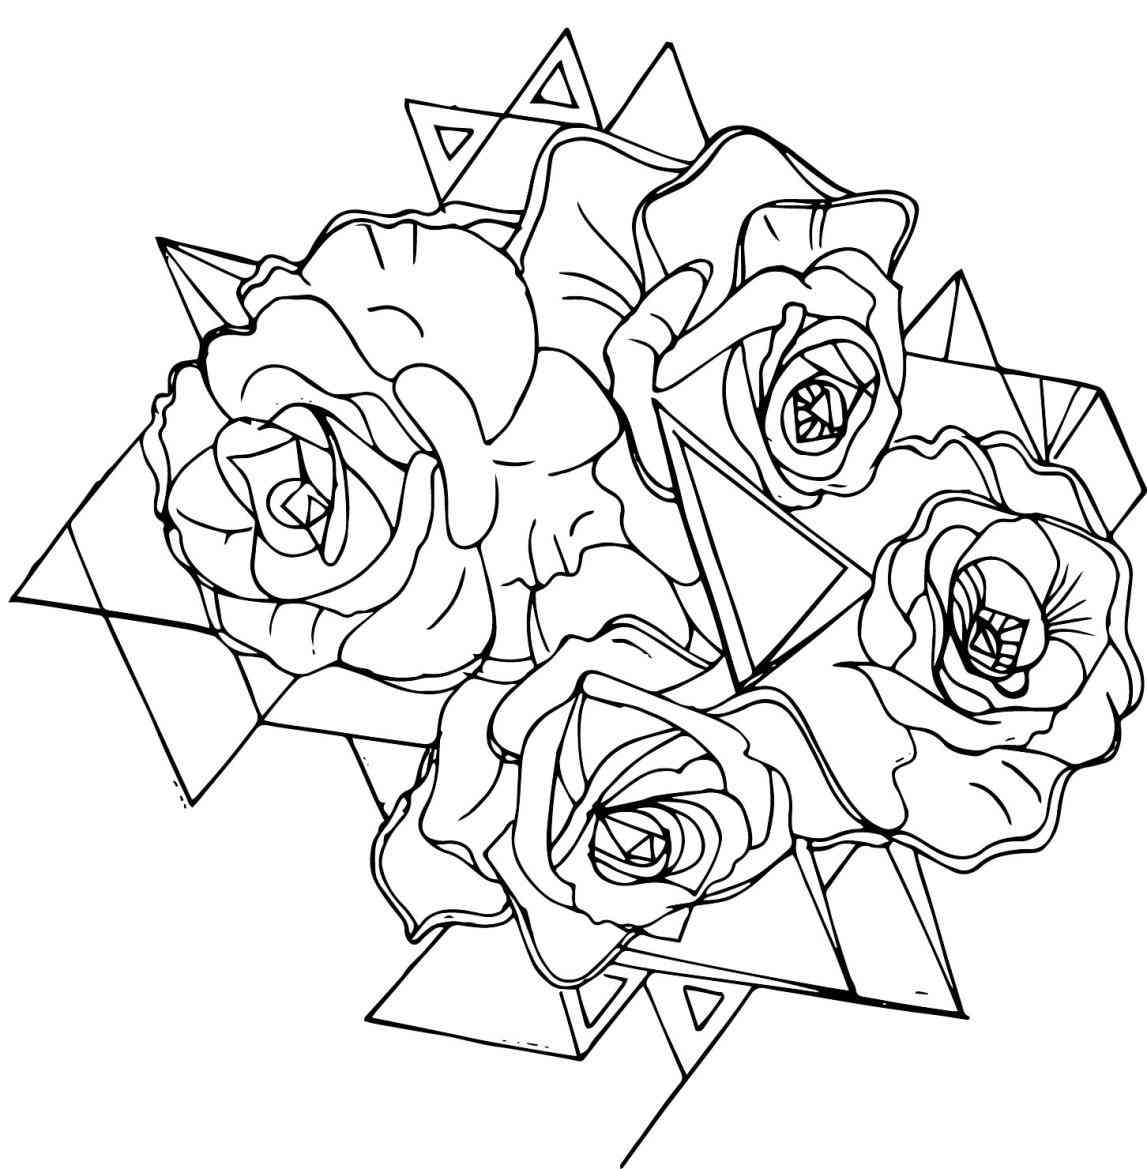 1147x1169 Rose Drawing Outline Drawing Rose Drawings Love Spells